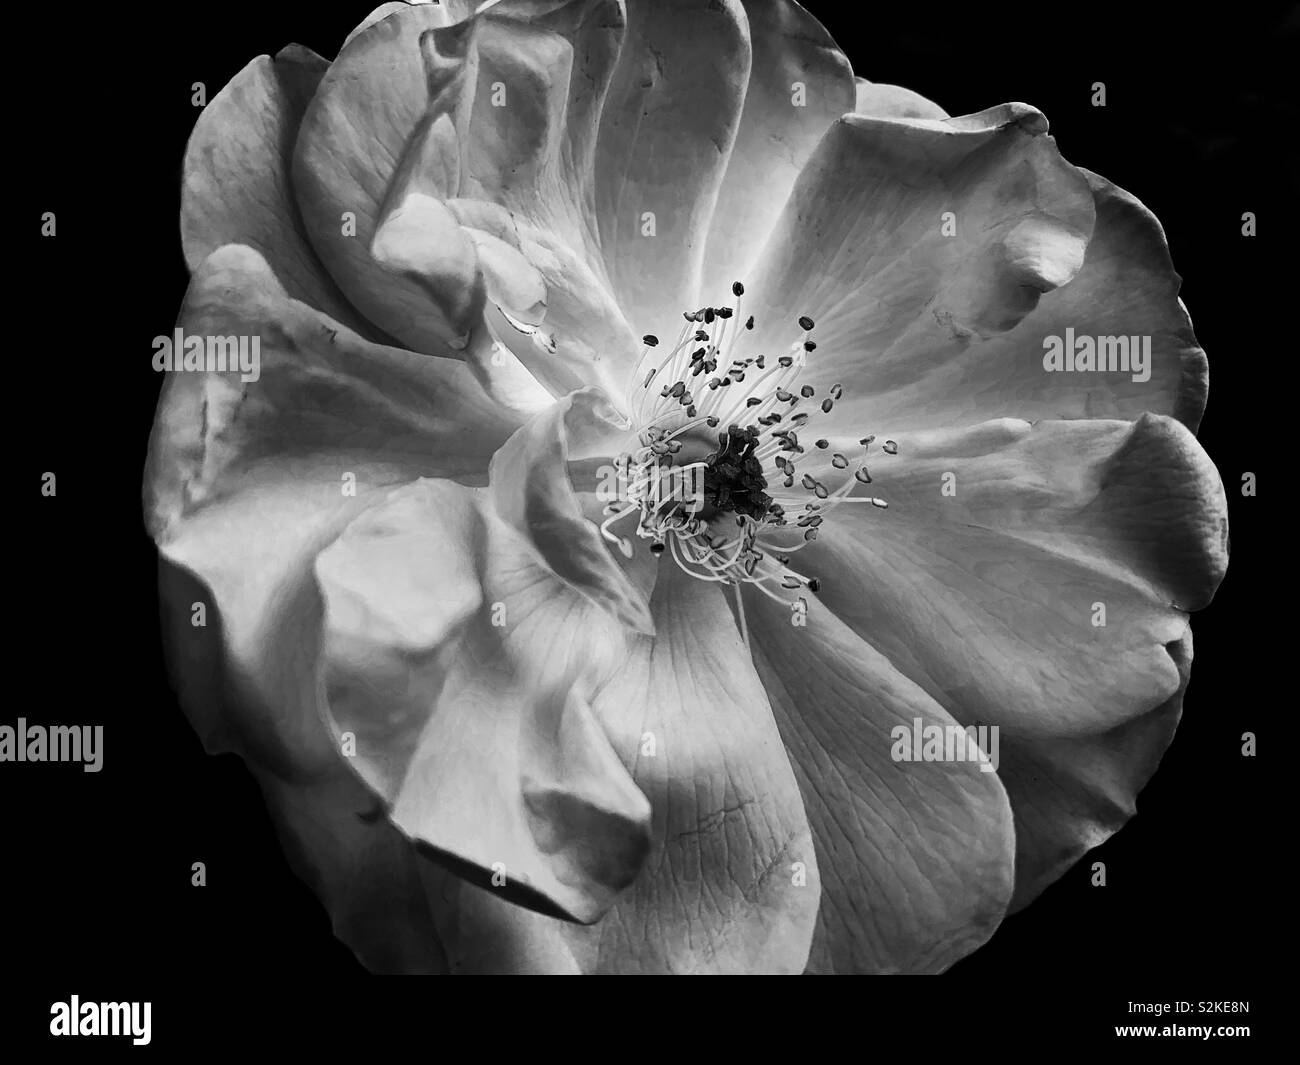 What Is Your Definition Of Beauty Stock Photo 311444245 Alamy